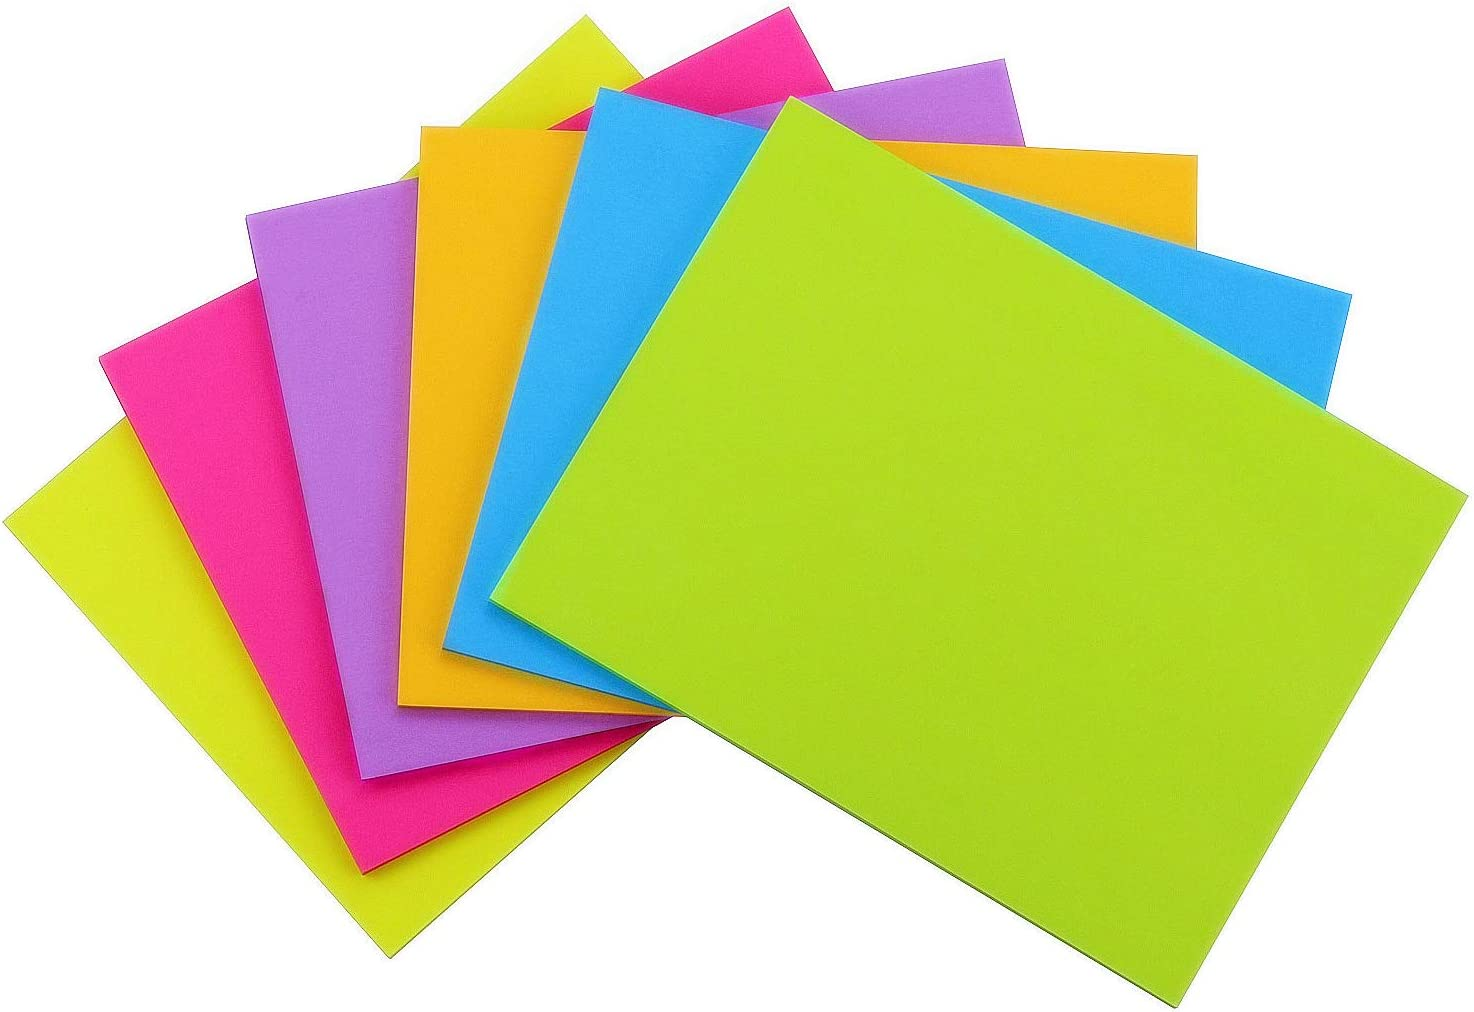 Early Buy Sticky Notes 6 Bright Color 6 Pads Self-Stick Notes 8 in x 6 in, 45 Sheets/Pad